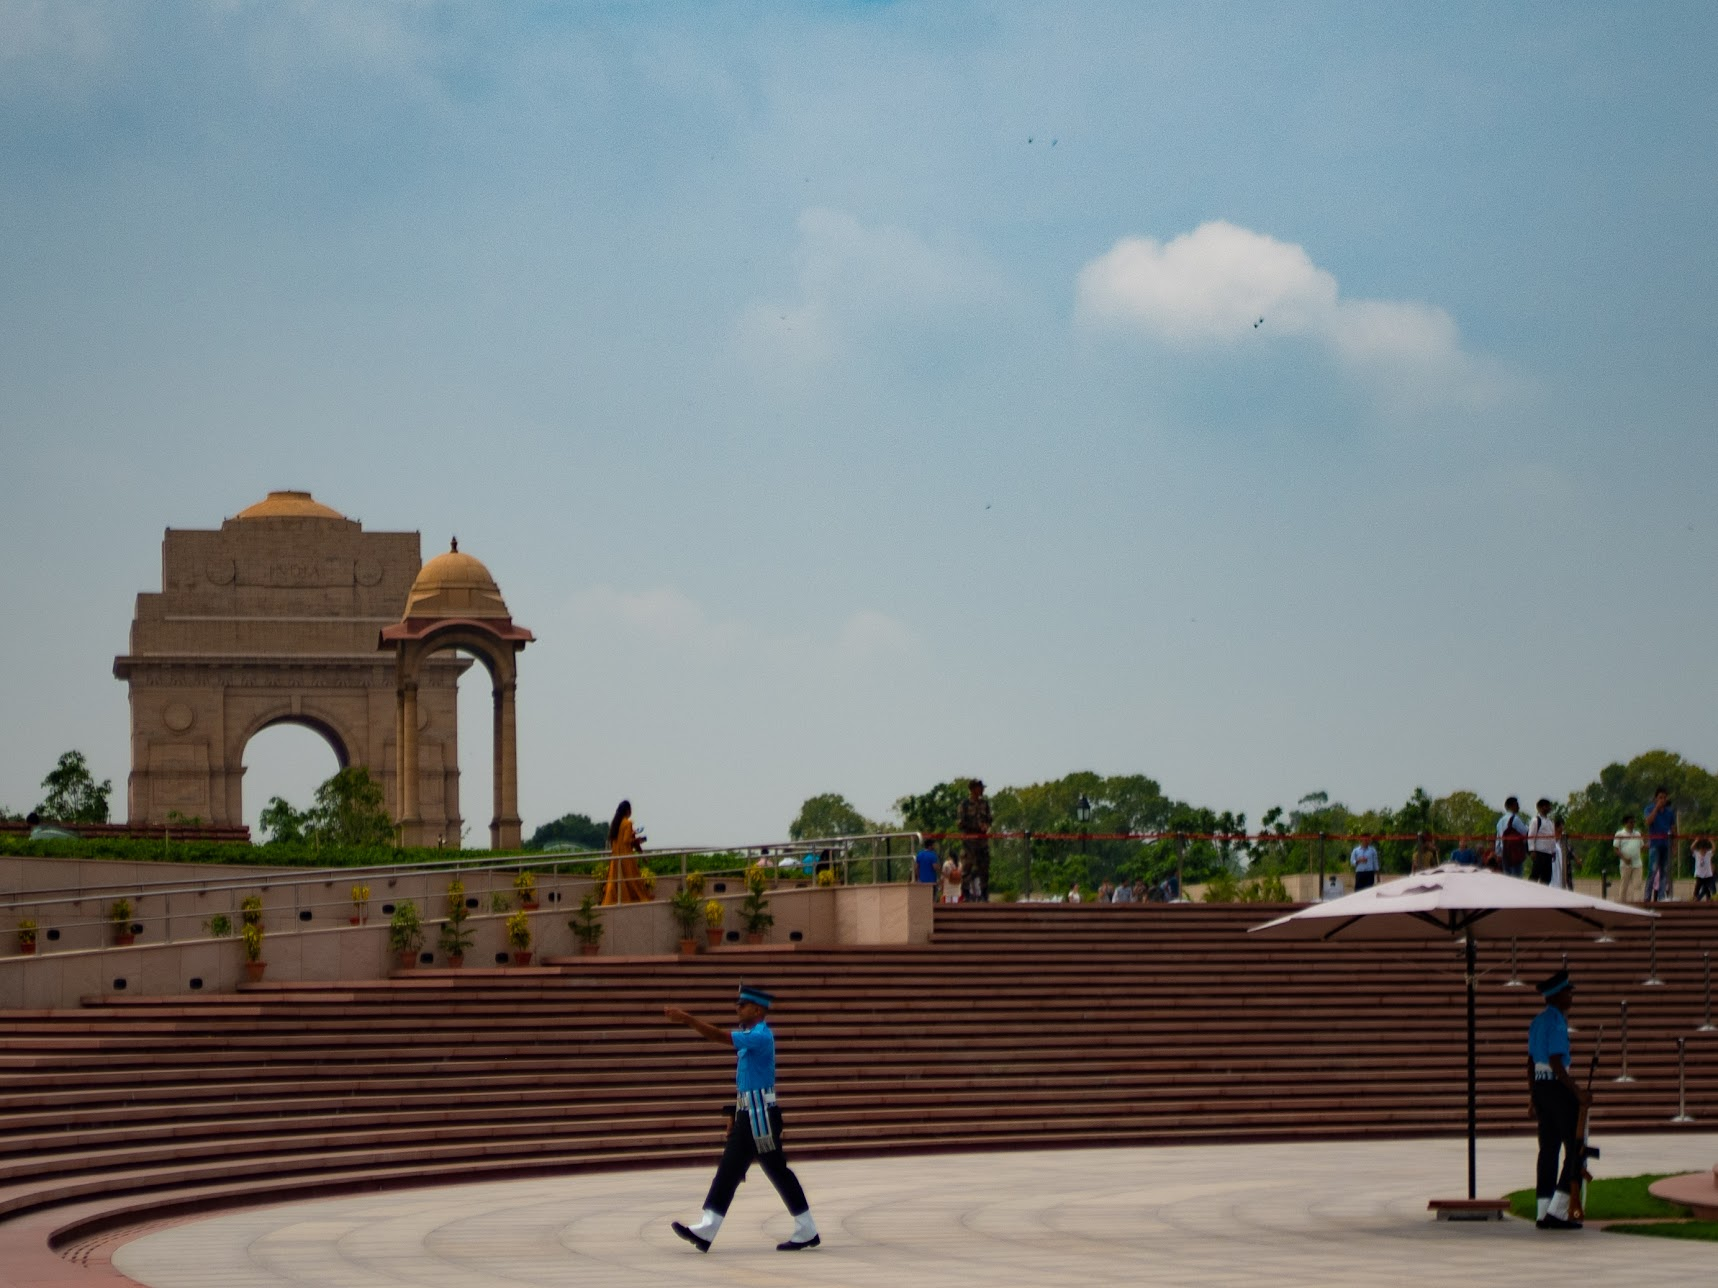 War memorial with India Gate in the background